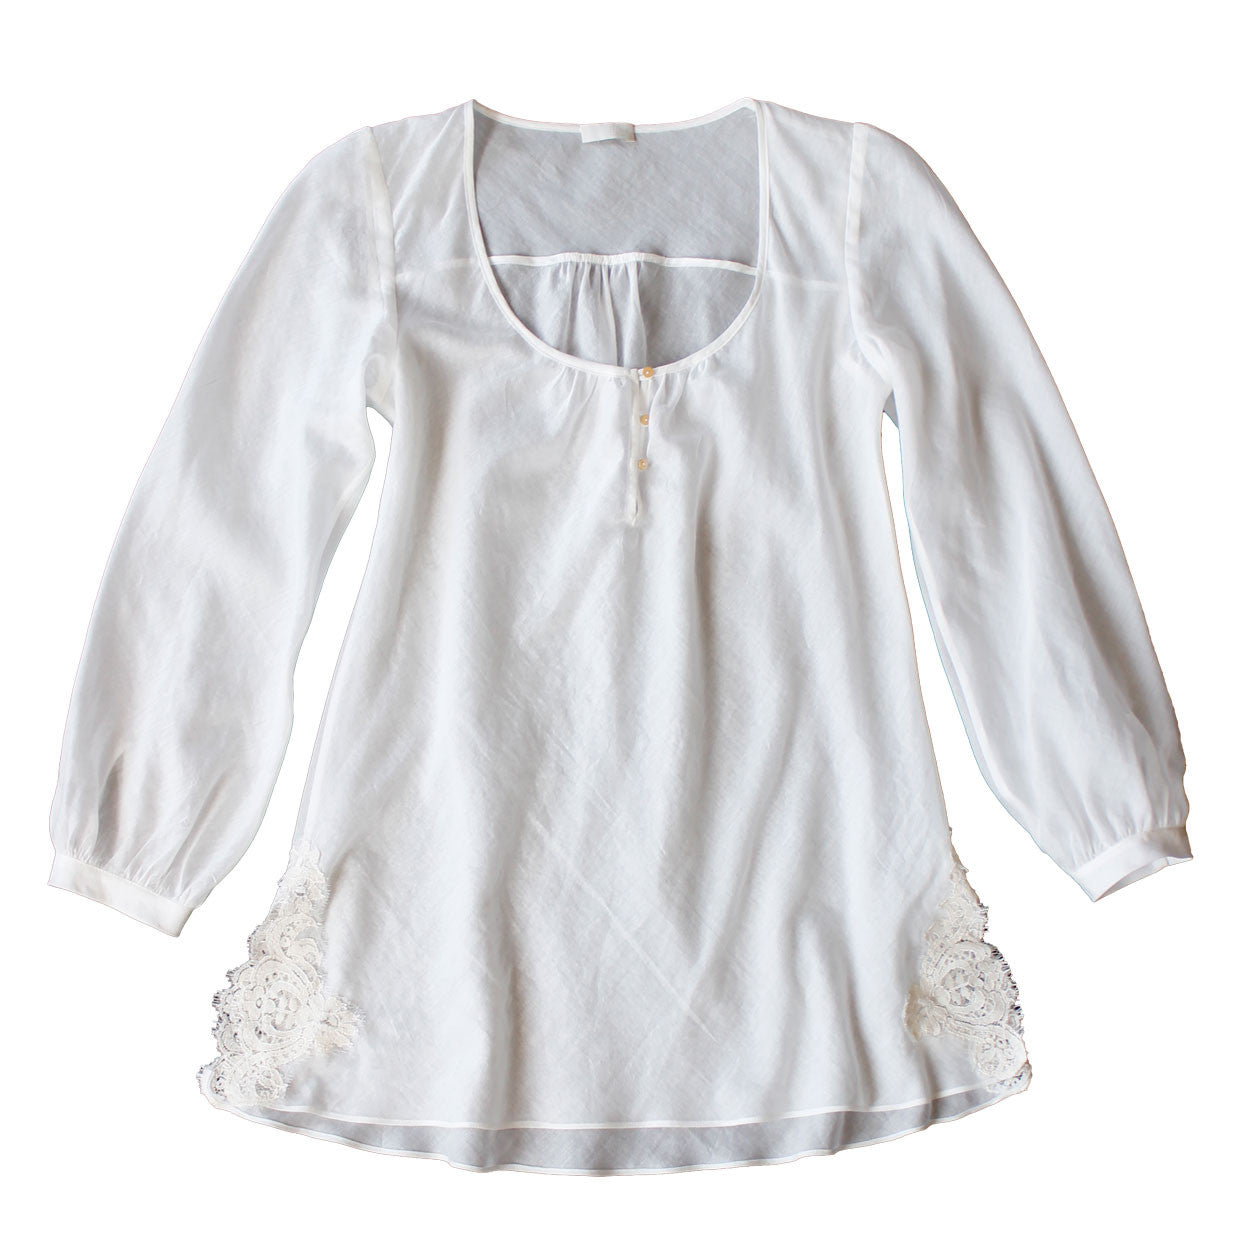 Ostara Sleep Shirt in Swiss Cotton Batiste